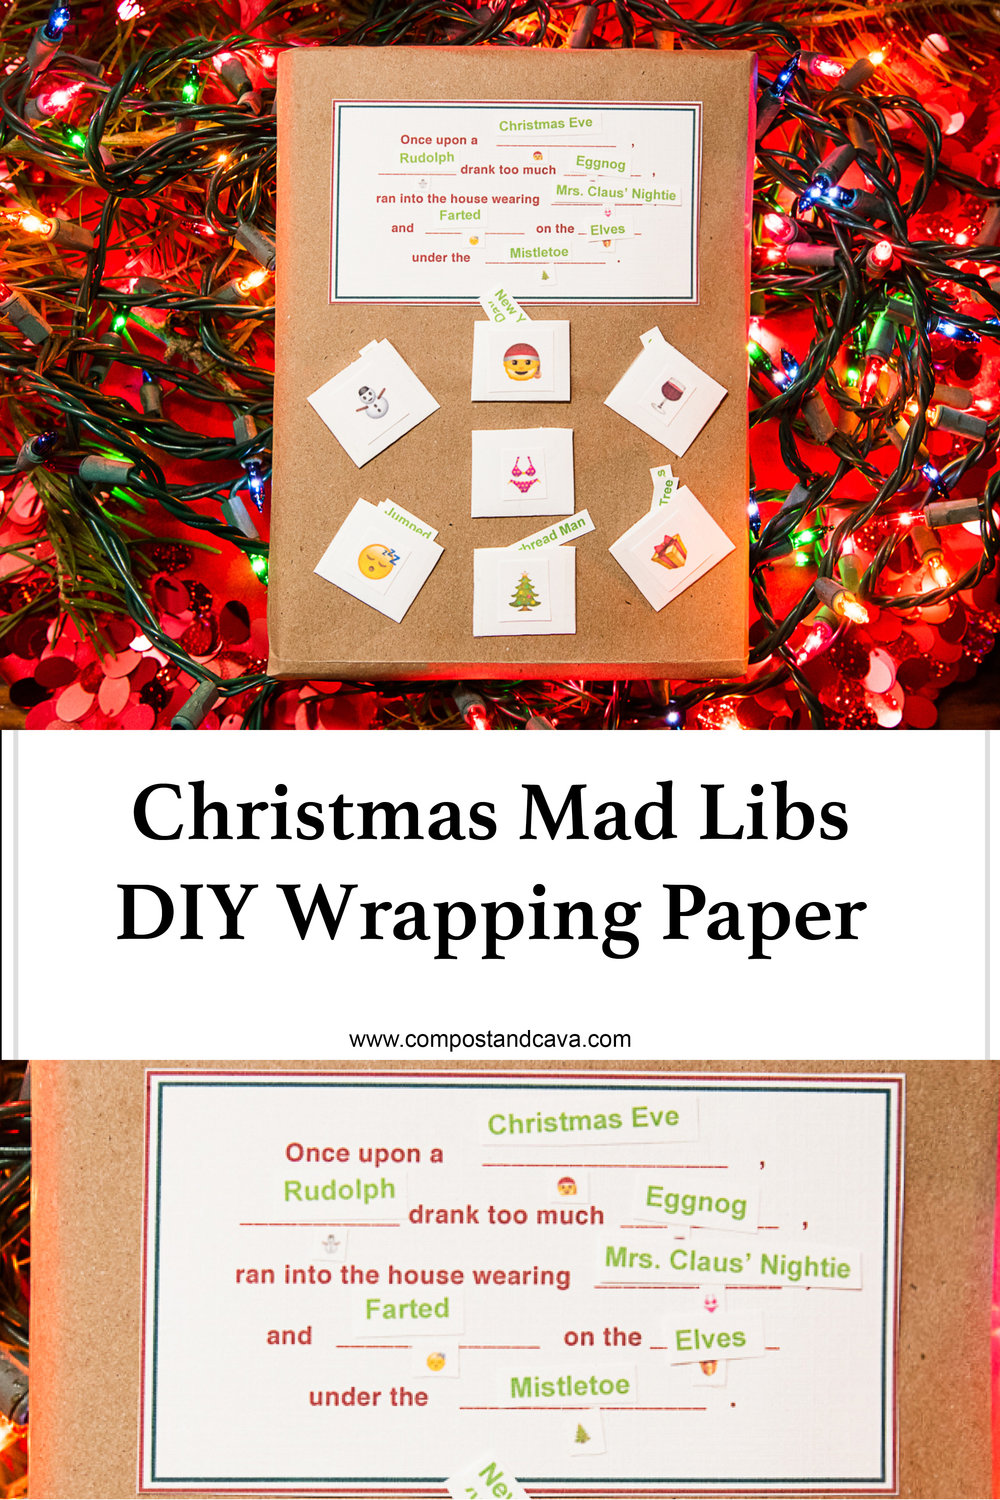 DIY Christmas Mad Libs Wrapping Paper